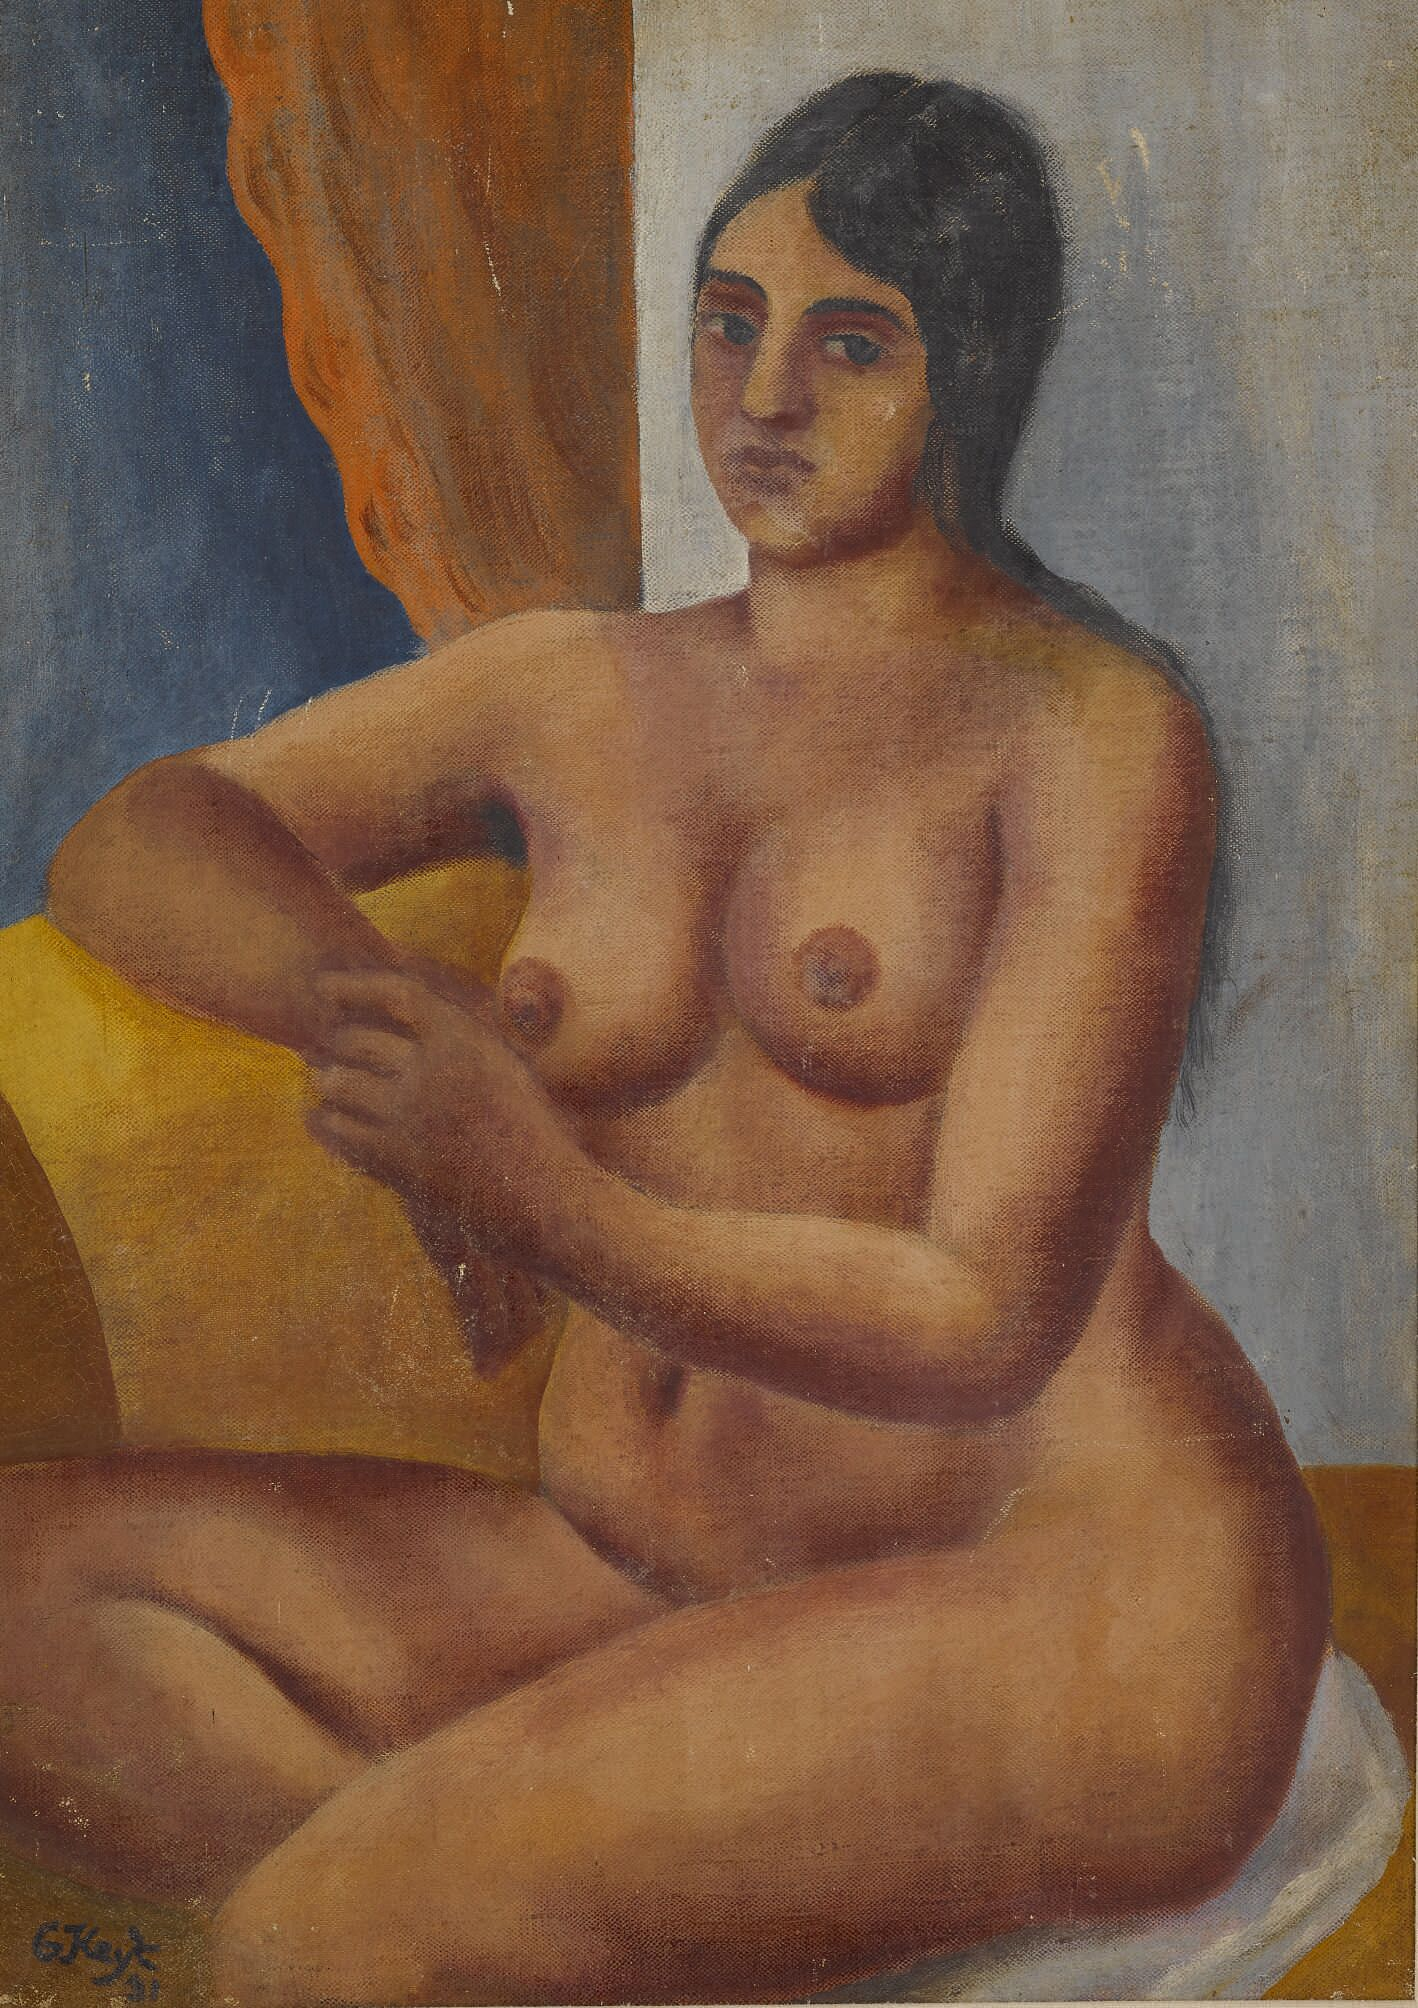 Portrait of A. M, oil on canvas by George Keyt. Estimate: $15,000-$20,000